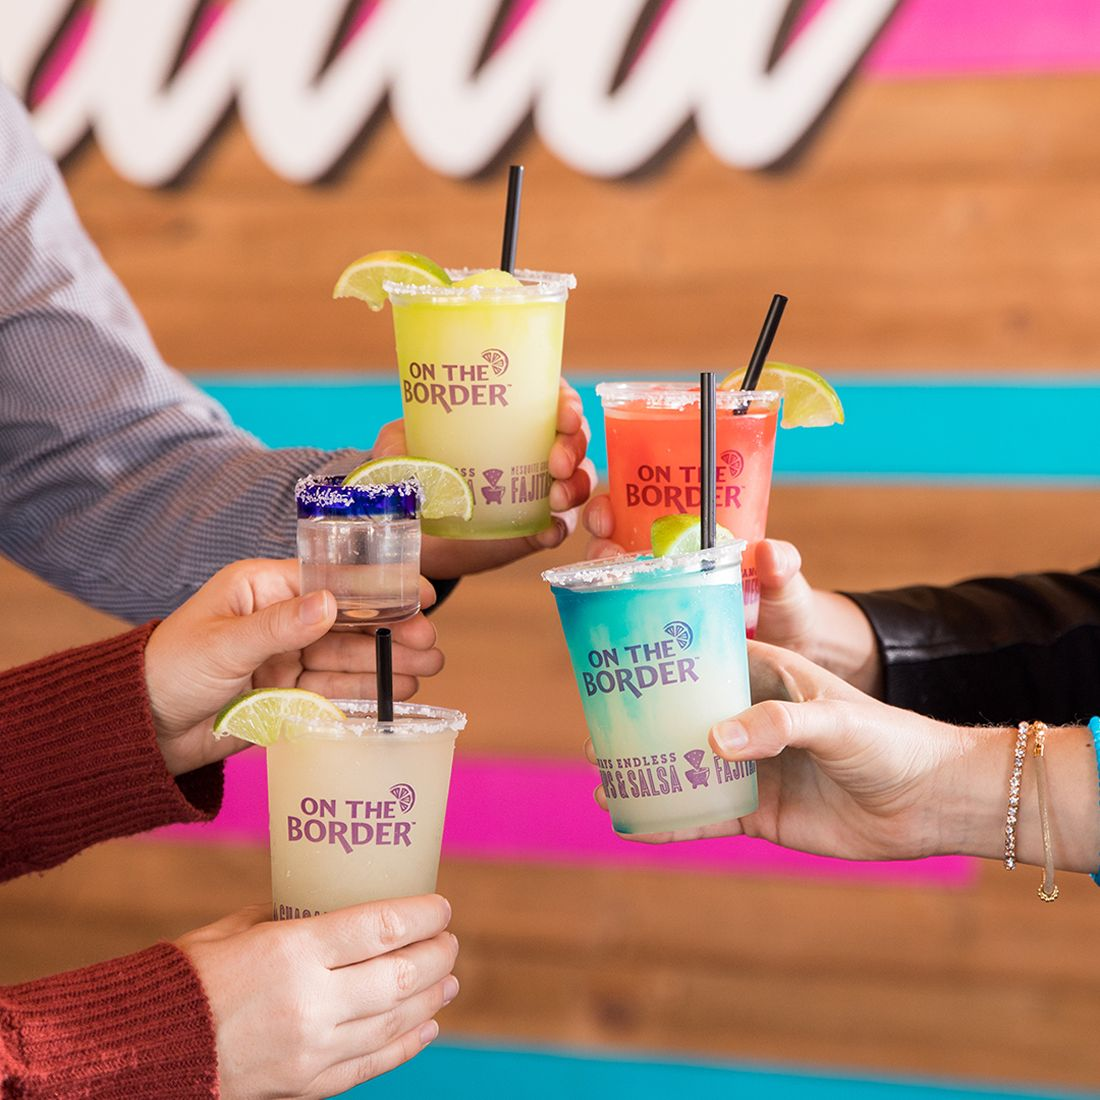 On the Border Mexican Grill & Cantina Shakes Up National Margarita Day with $2 House Margaritas